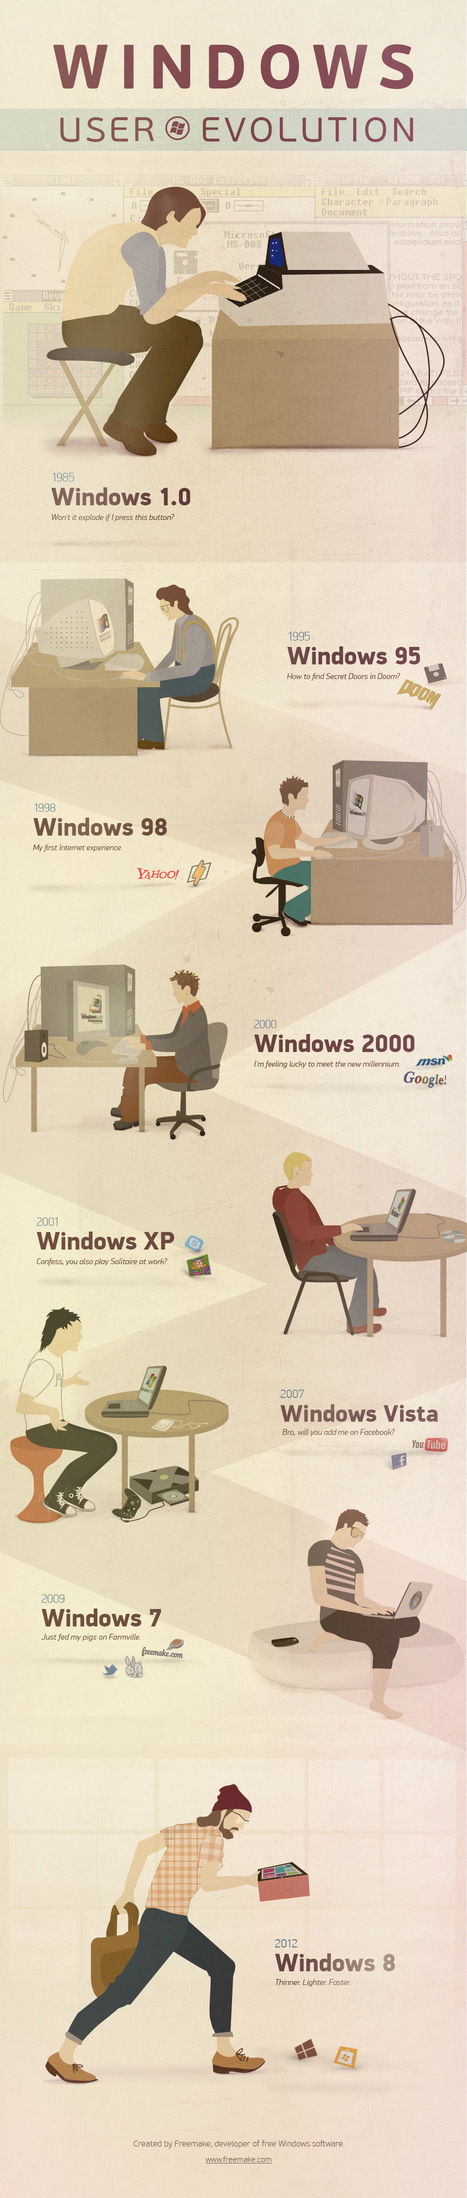 The Evolution of Windows OS From Beginning to Present [INFOGRAPHIC] | Curation Education & Design | Scoop.it